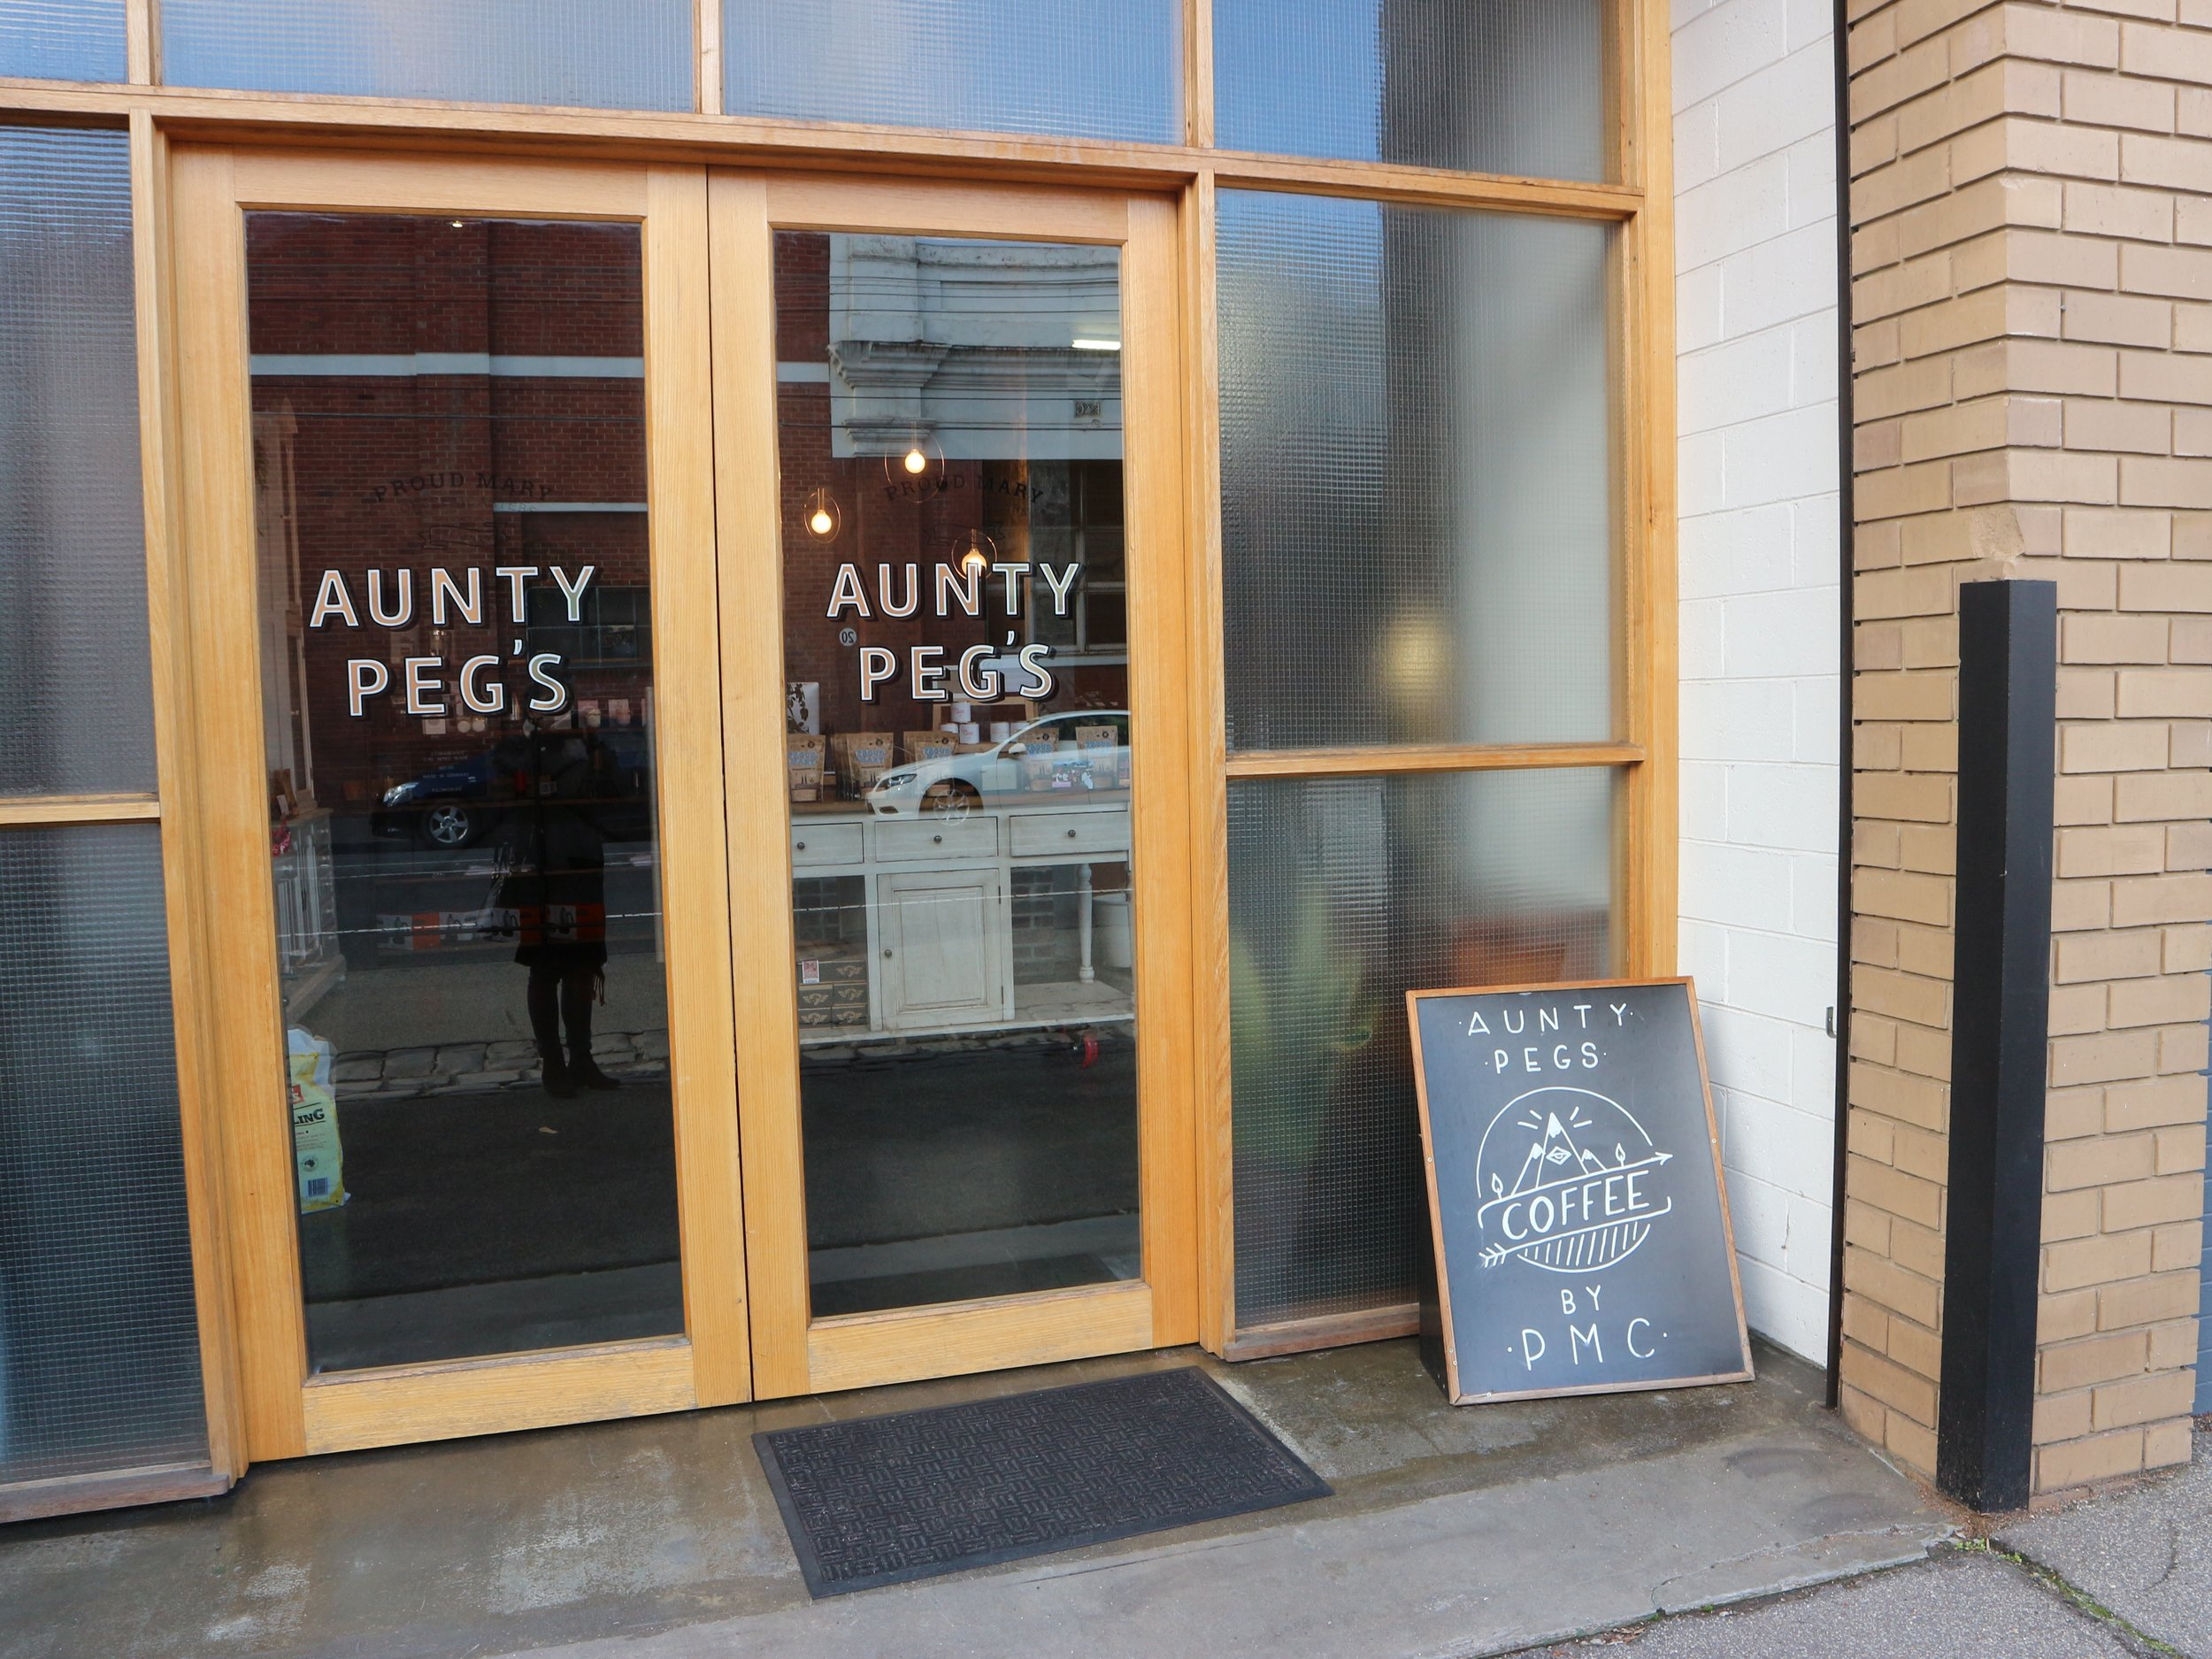 Aunty Peg's by PMC.